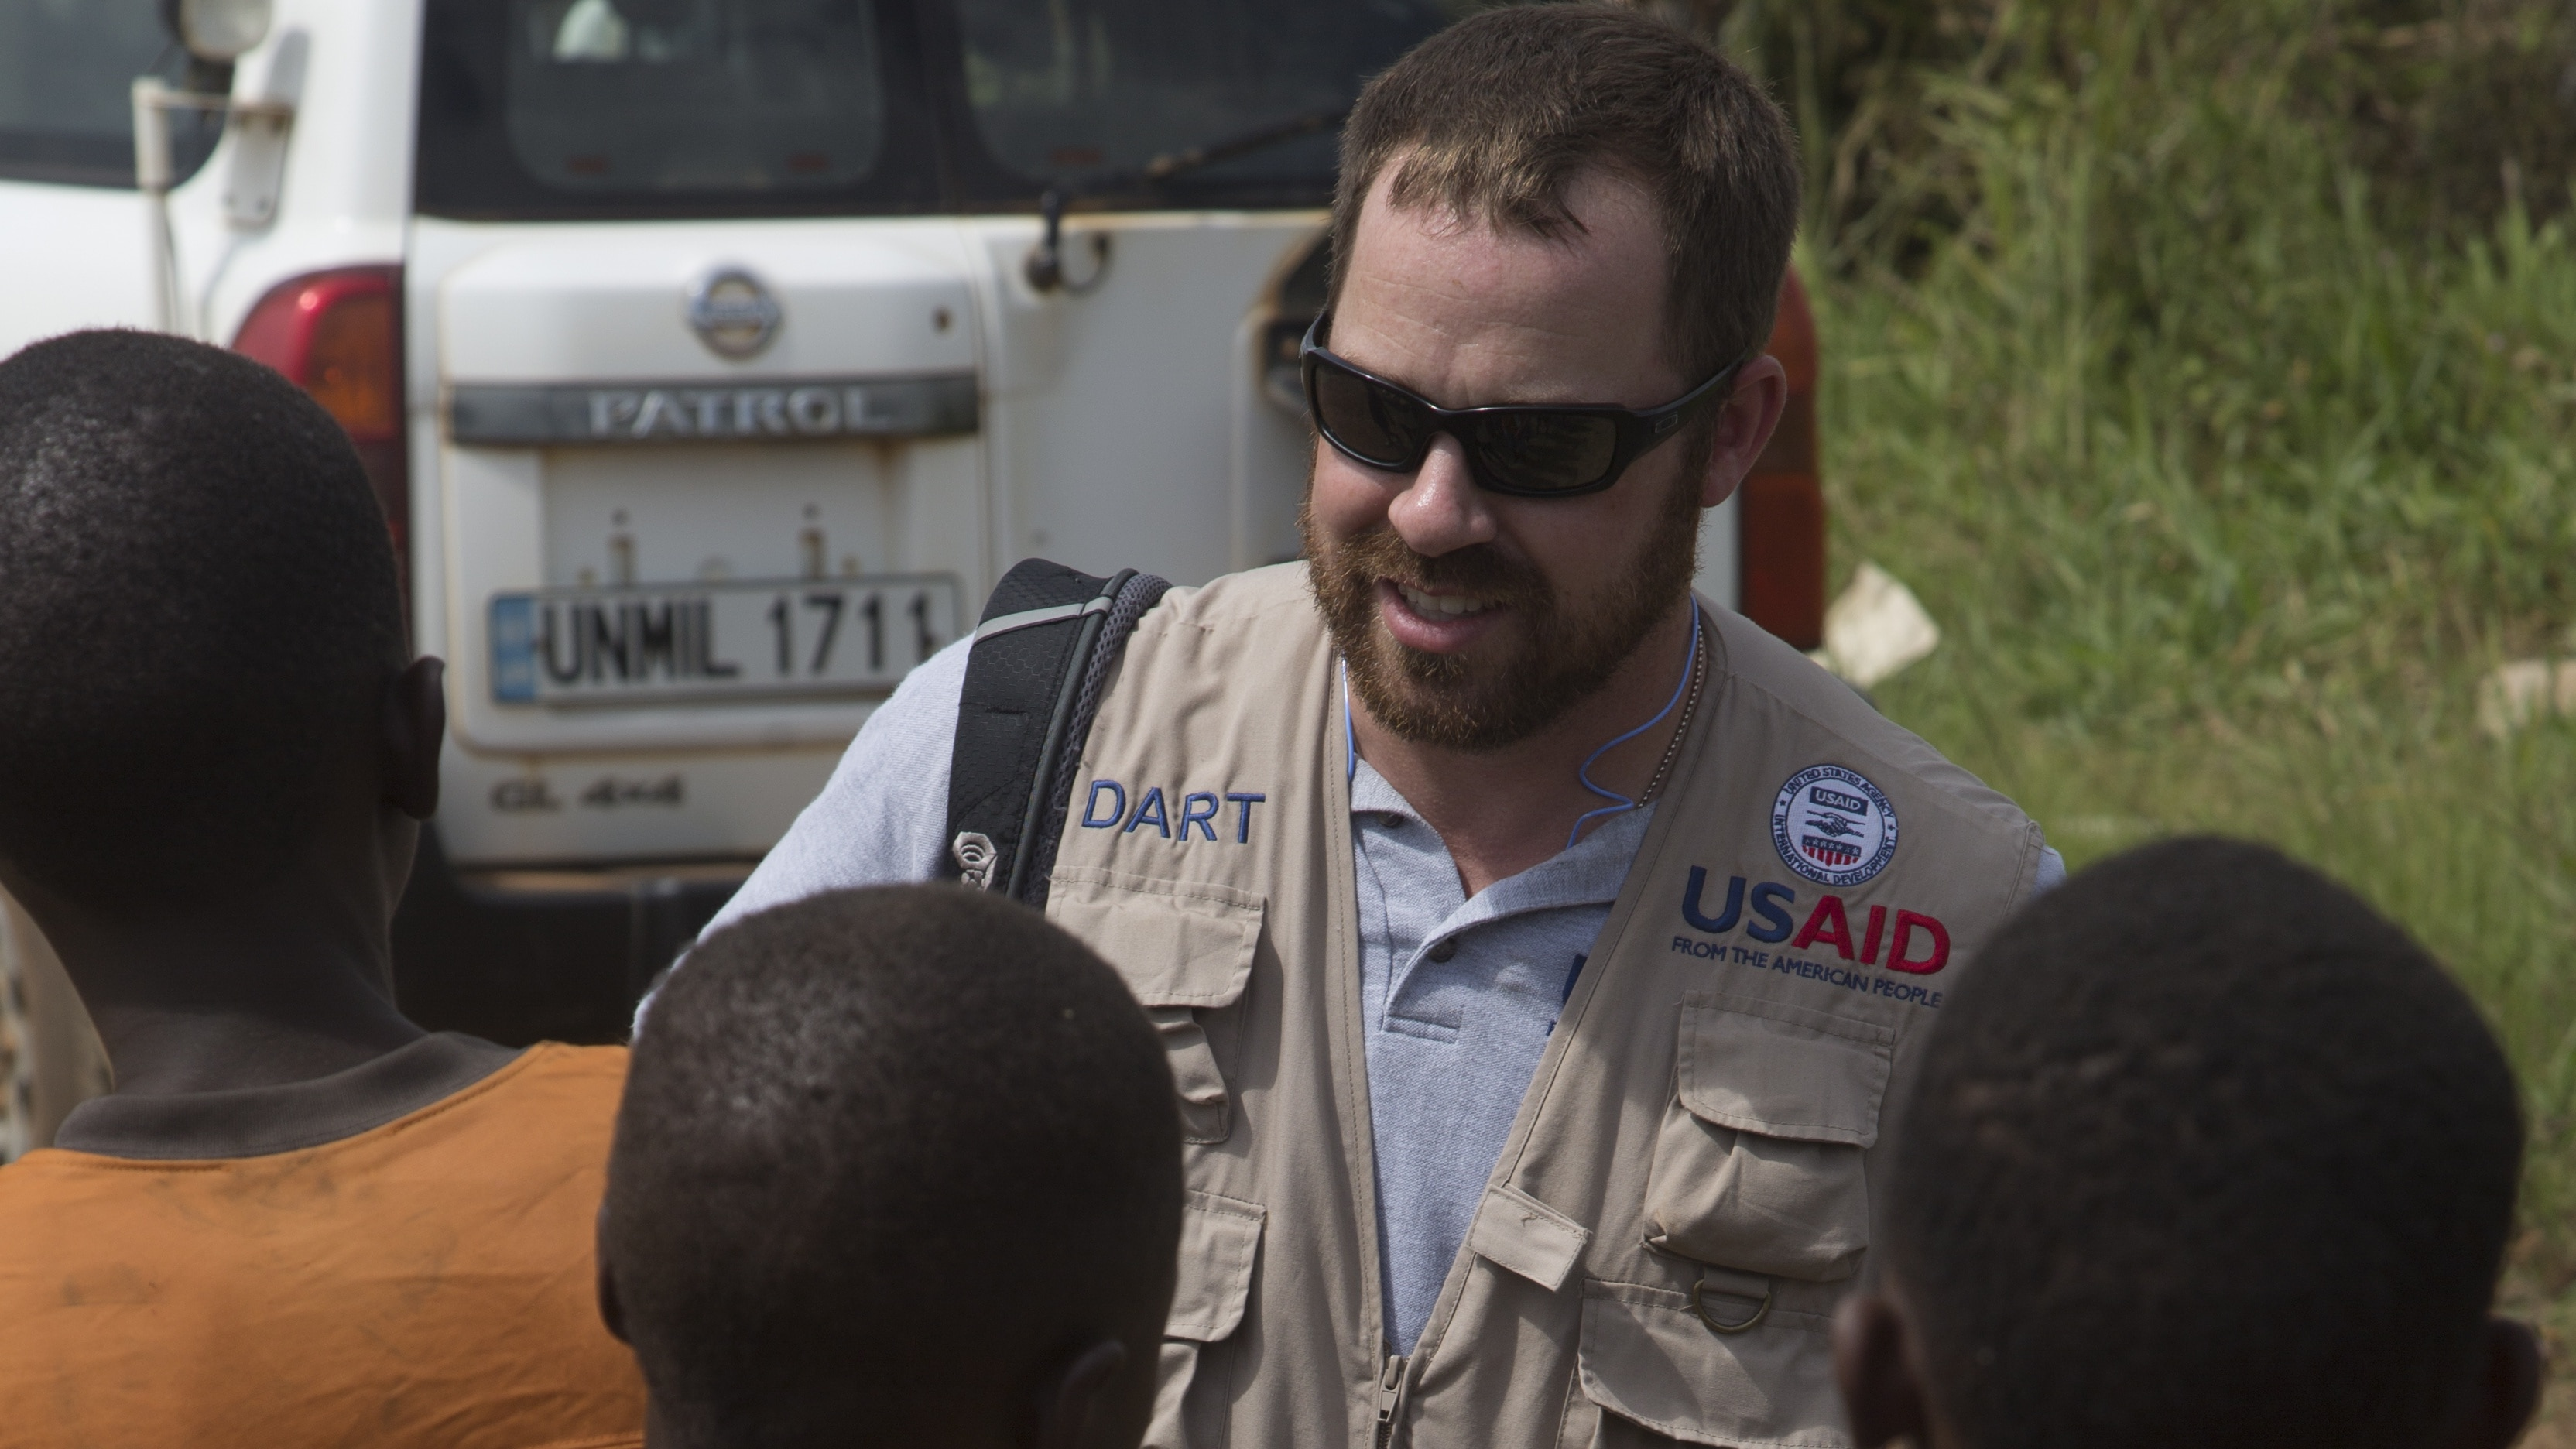 USAID in Liberia